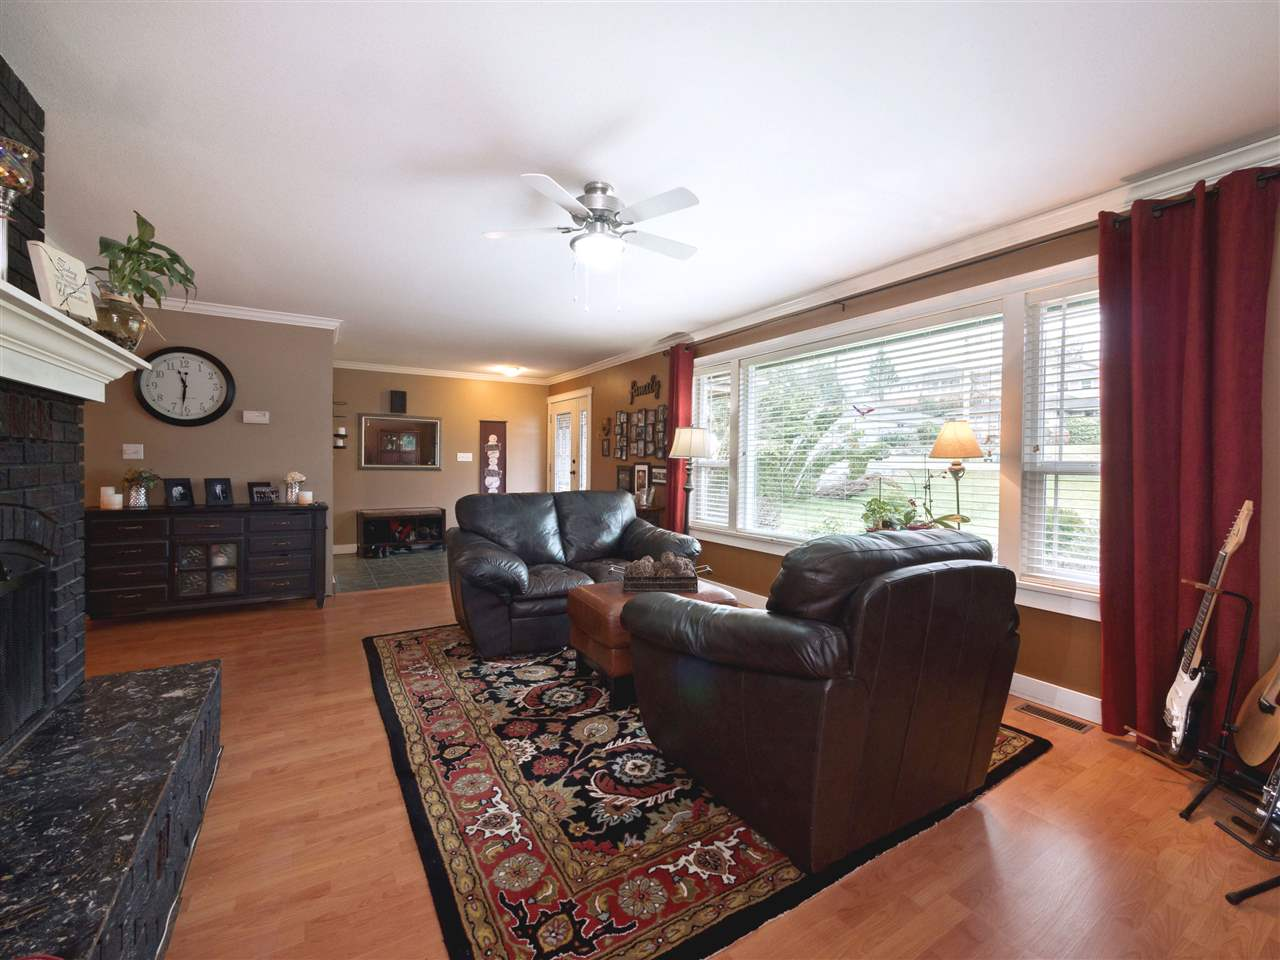 Photo 10: Photos: 33157 CHERRY Avenue in Mission: Mission BC House for sale : MLS® # R2236874